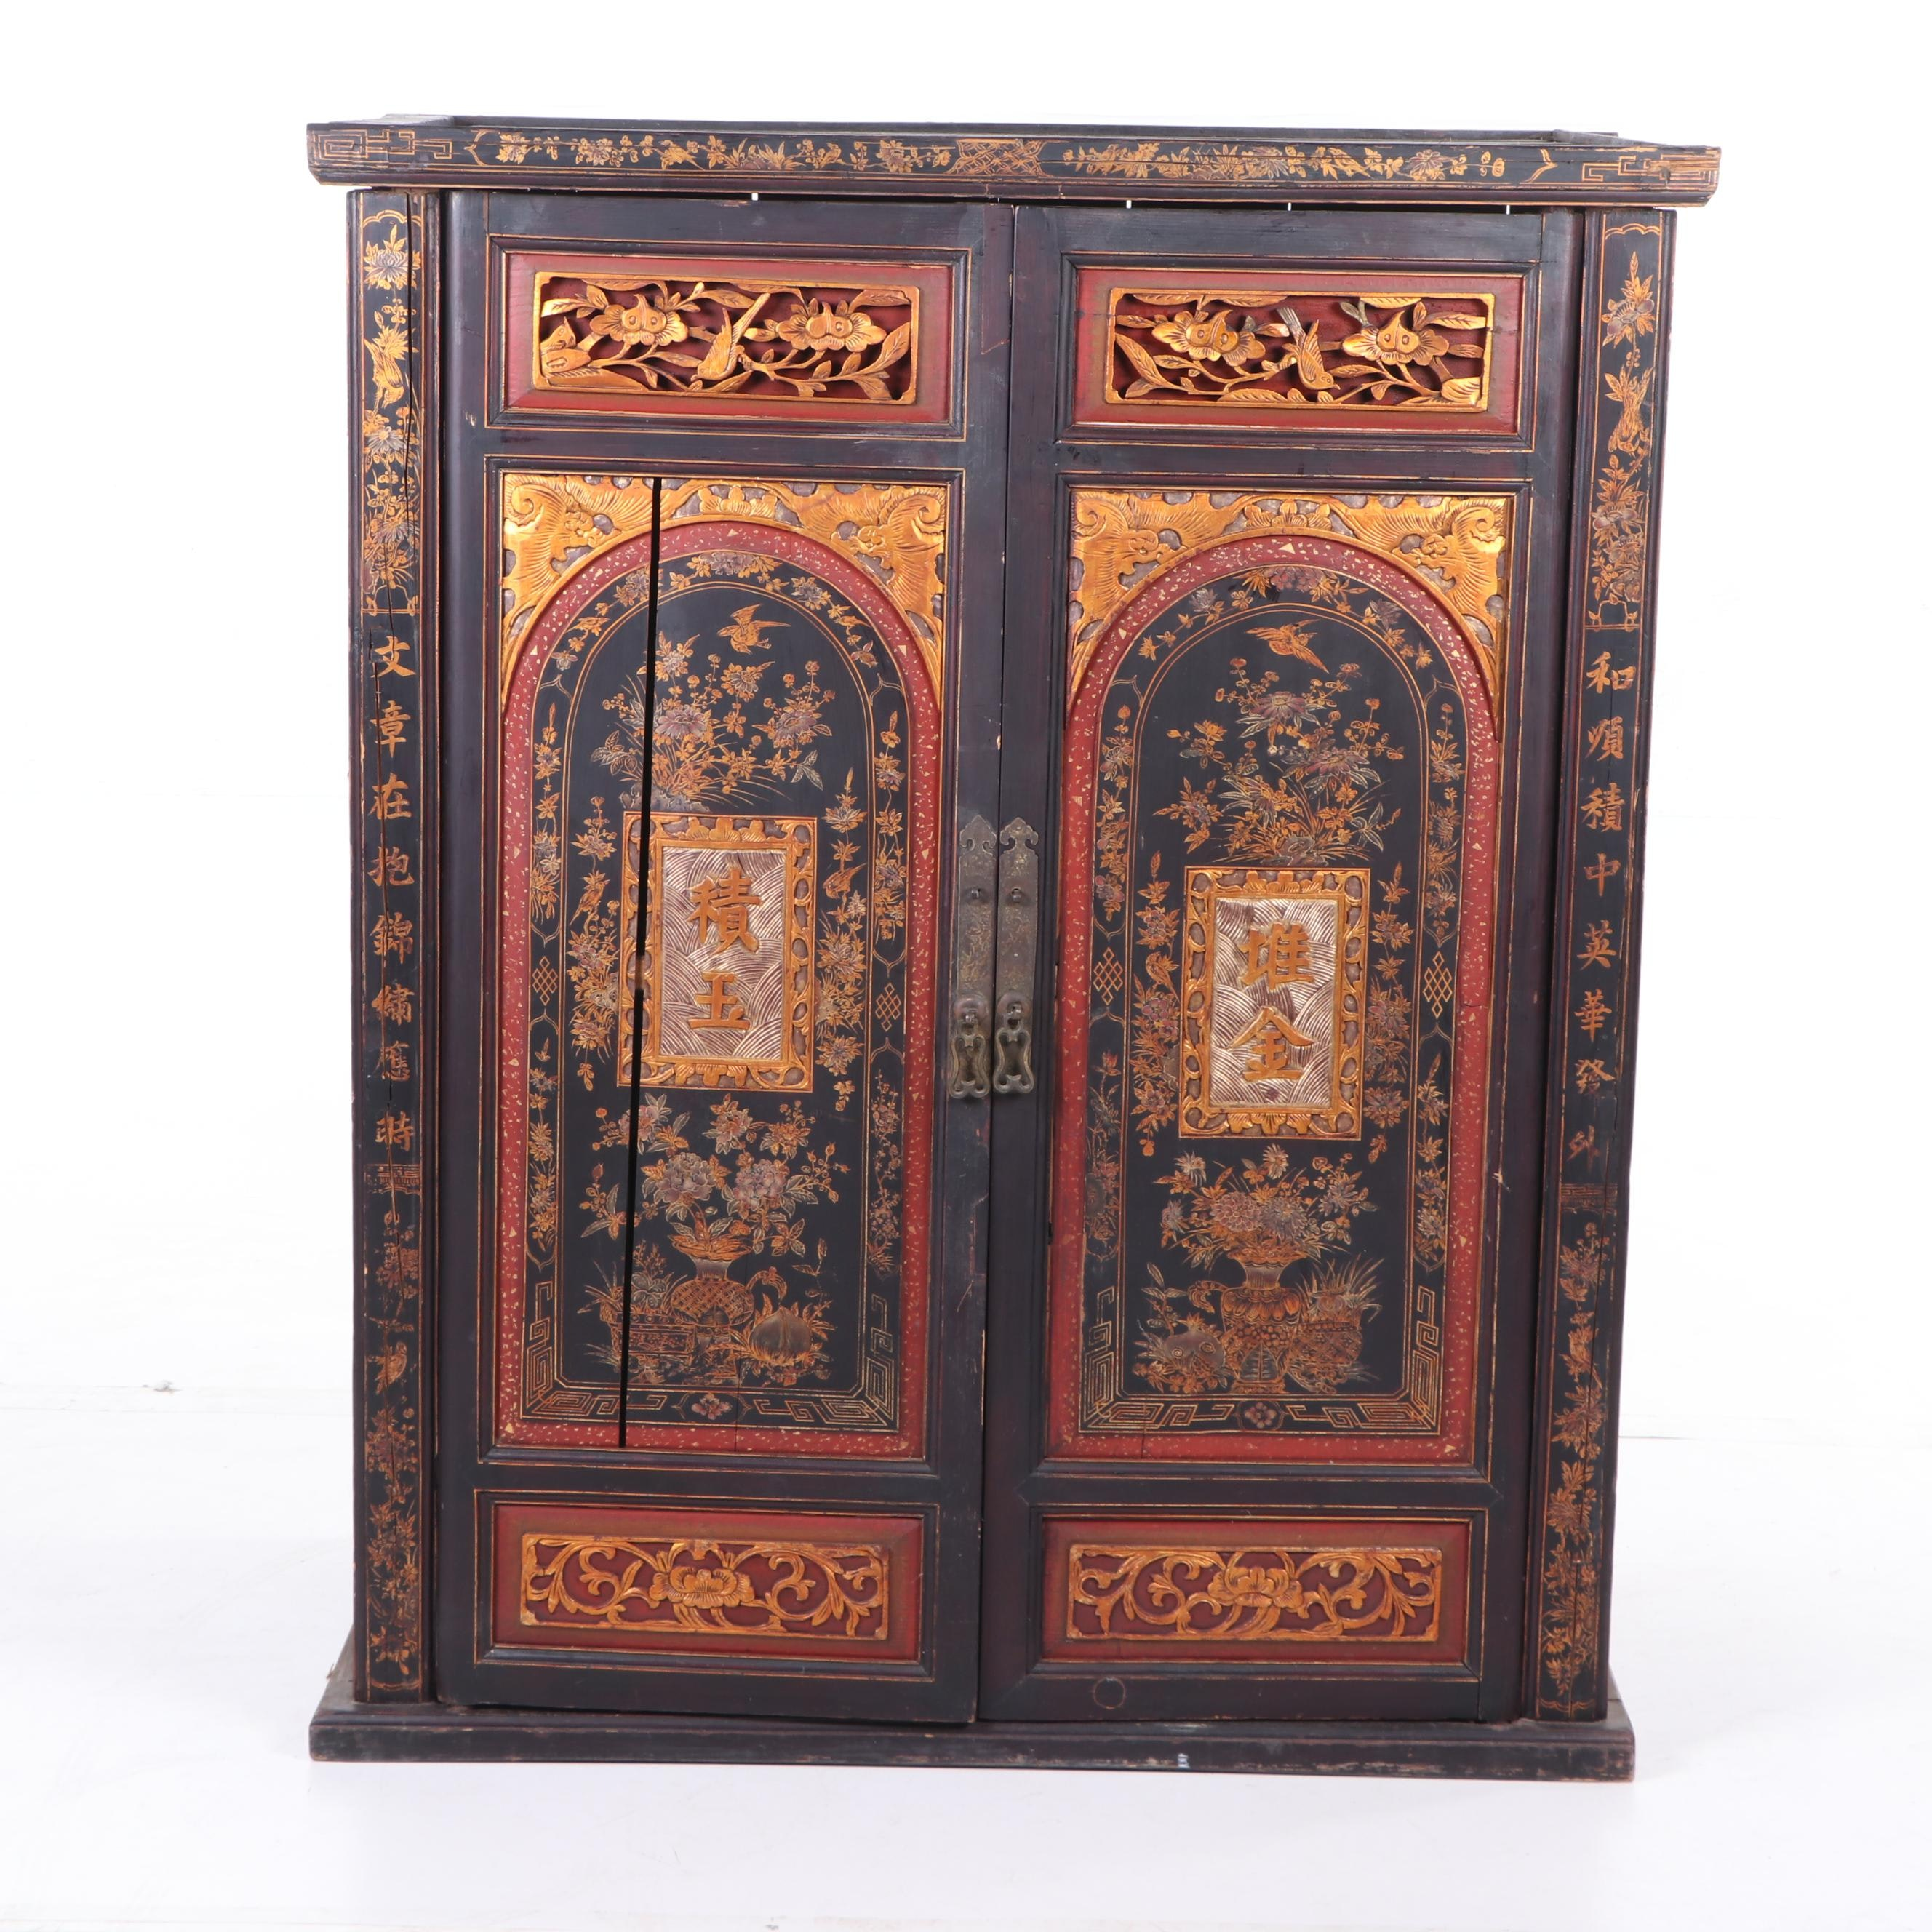 Ornately Decorated Chinoiserie Cabinet, Early 20th Century